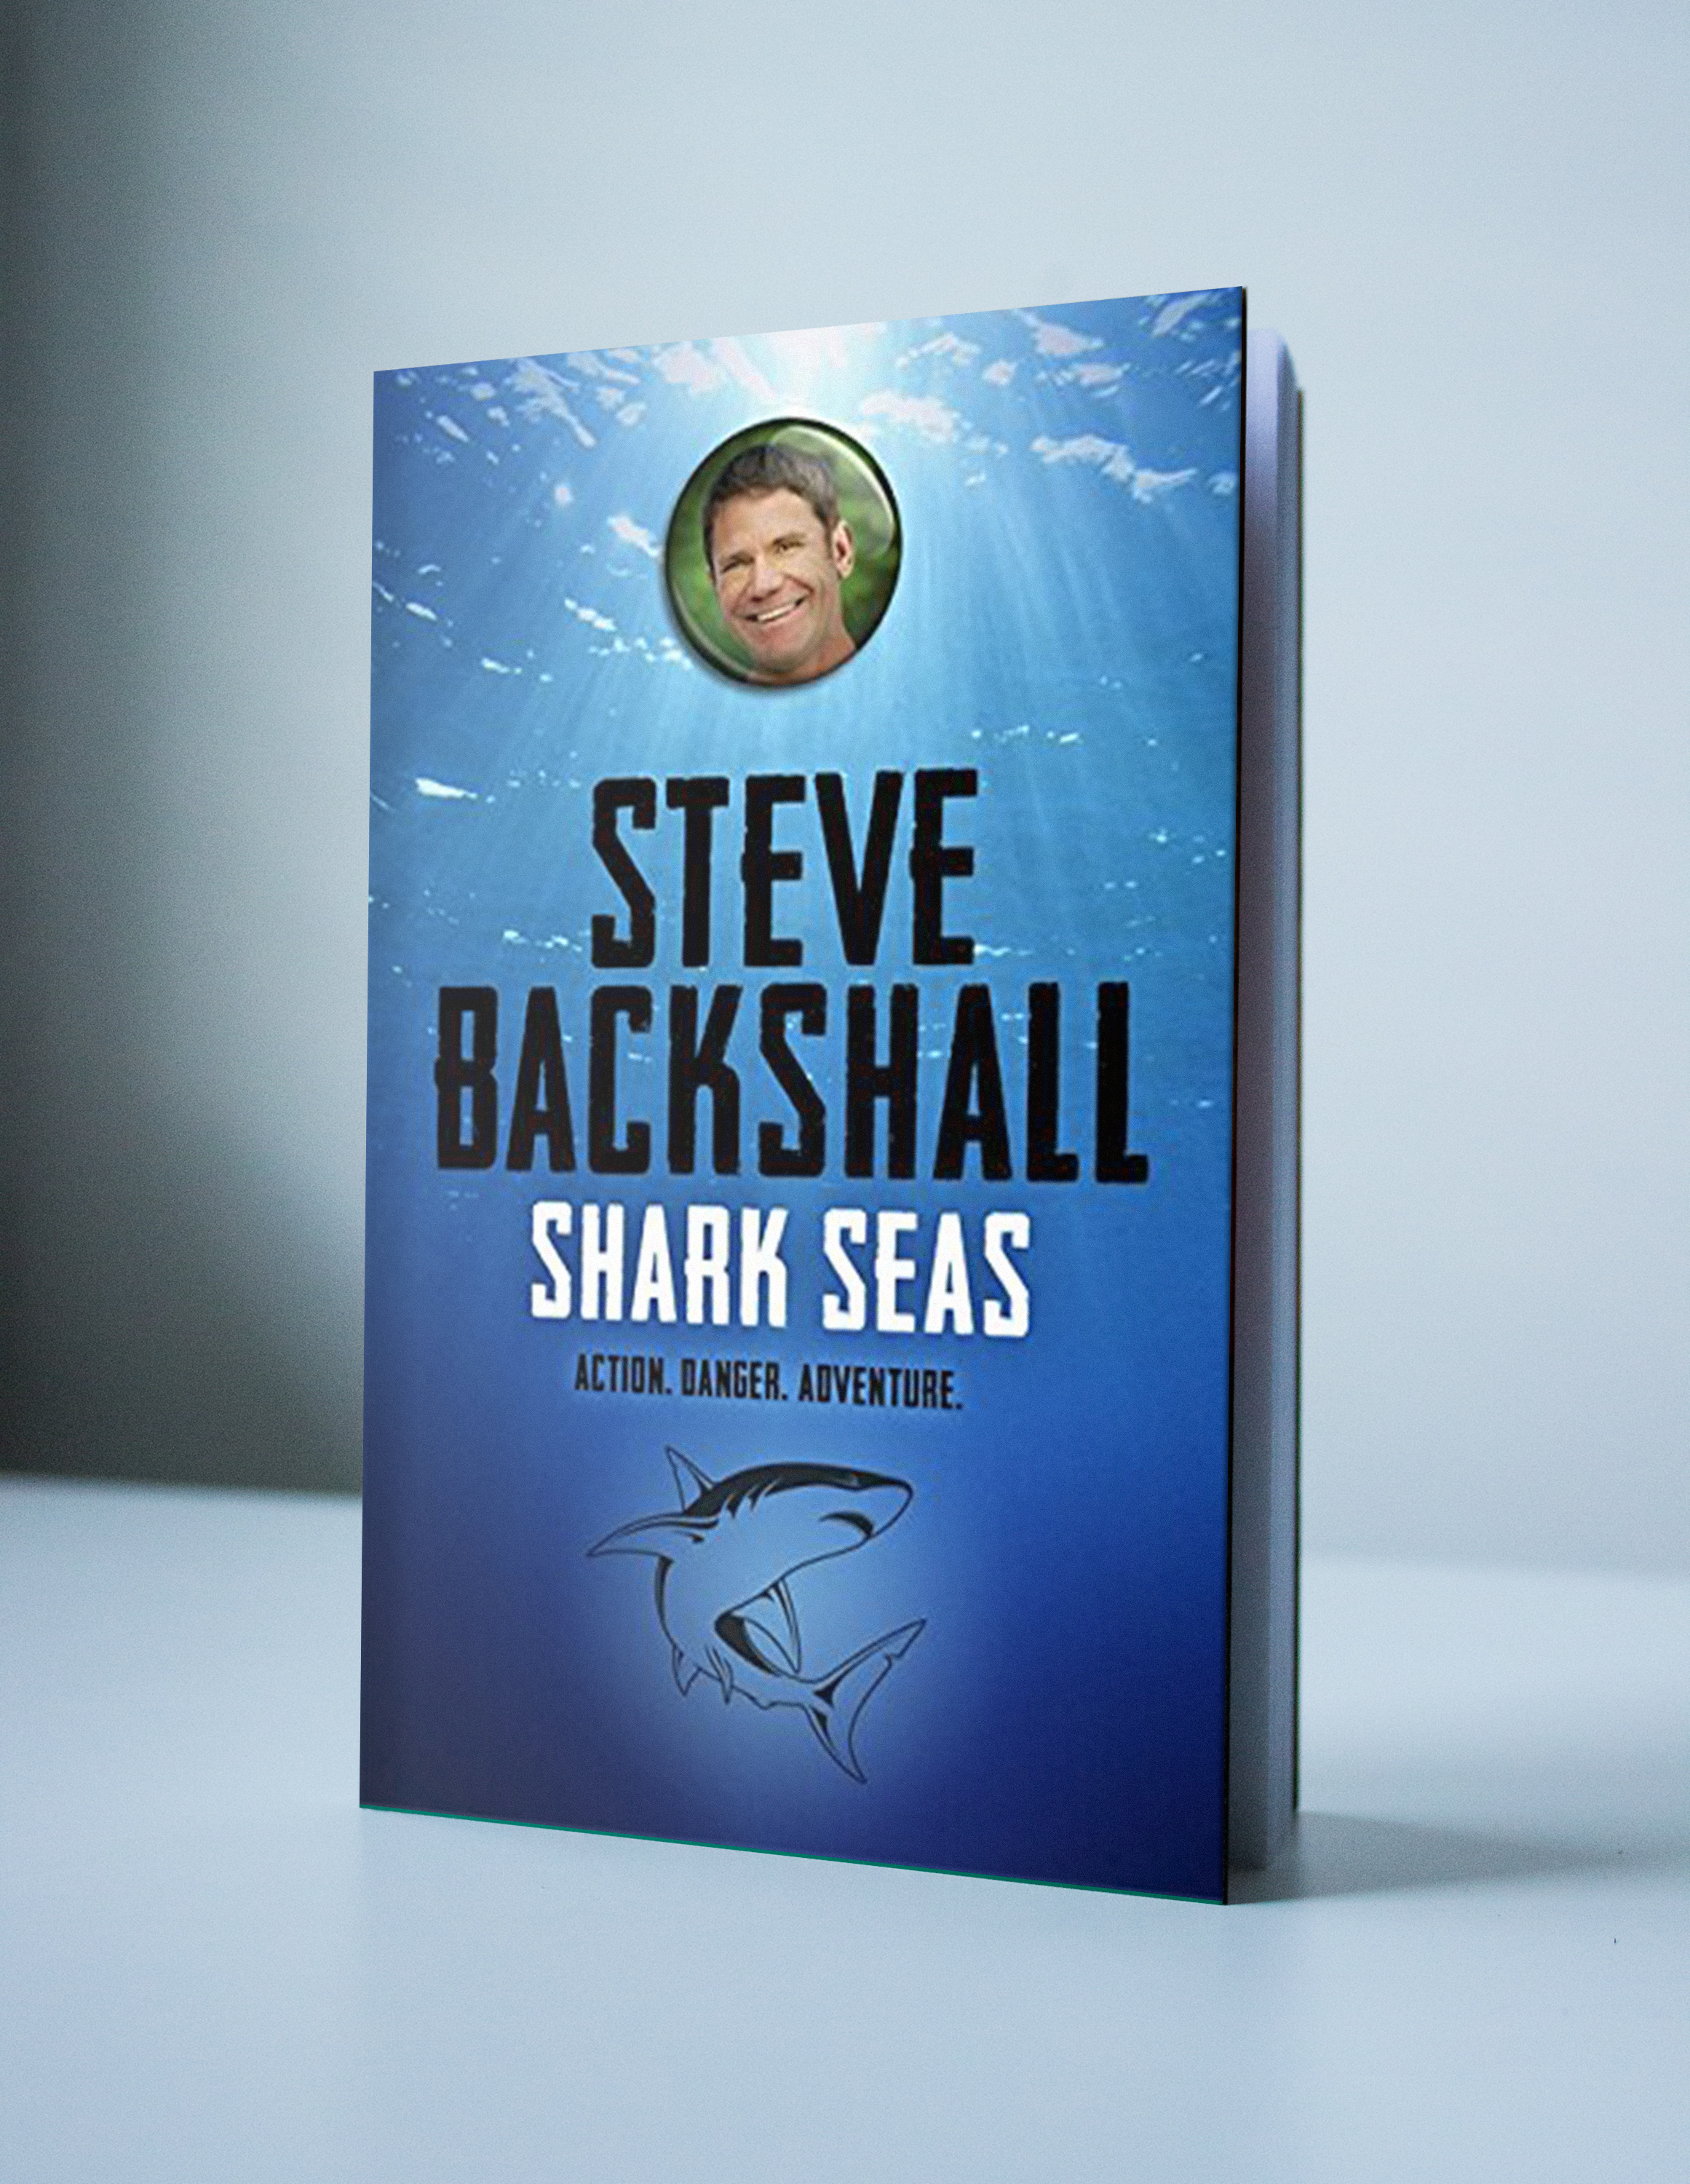 Steve Backshall Shark Seas